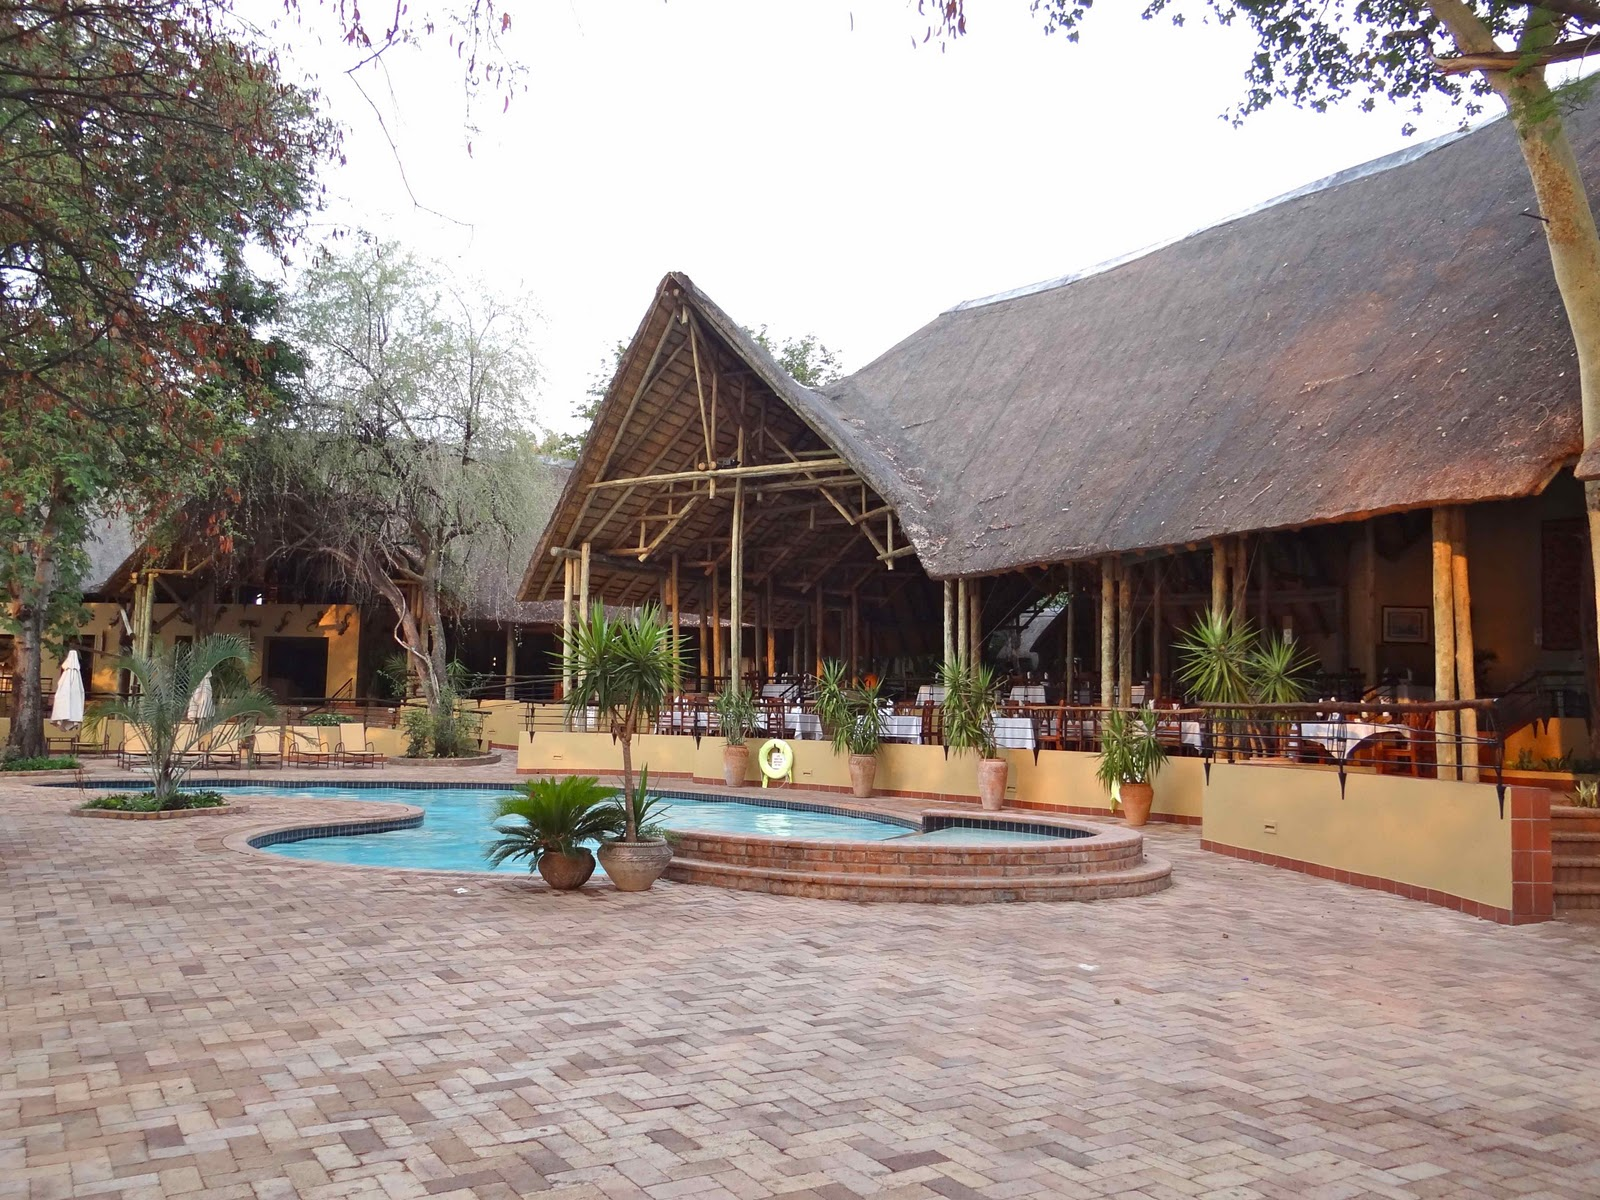 our african adventure day 18 19 chobe national park. Black Bedroom Furniture Sets. Home Design Ideas